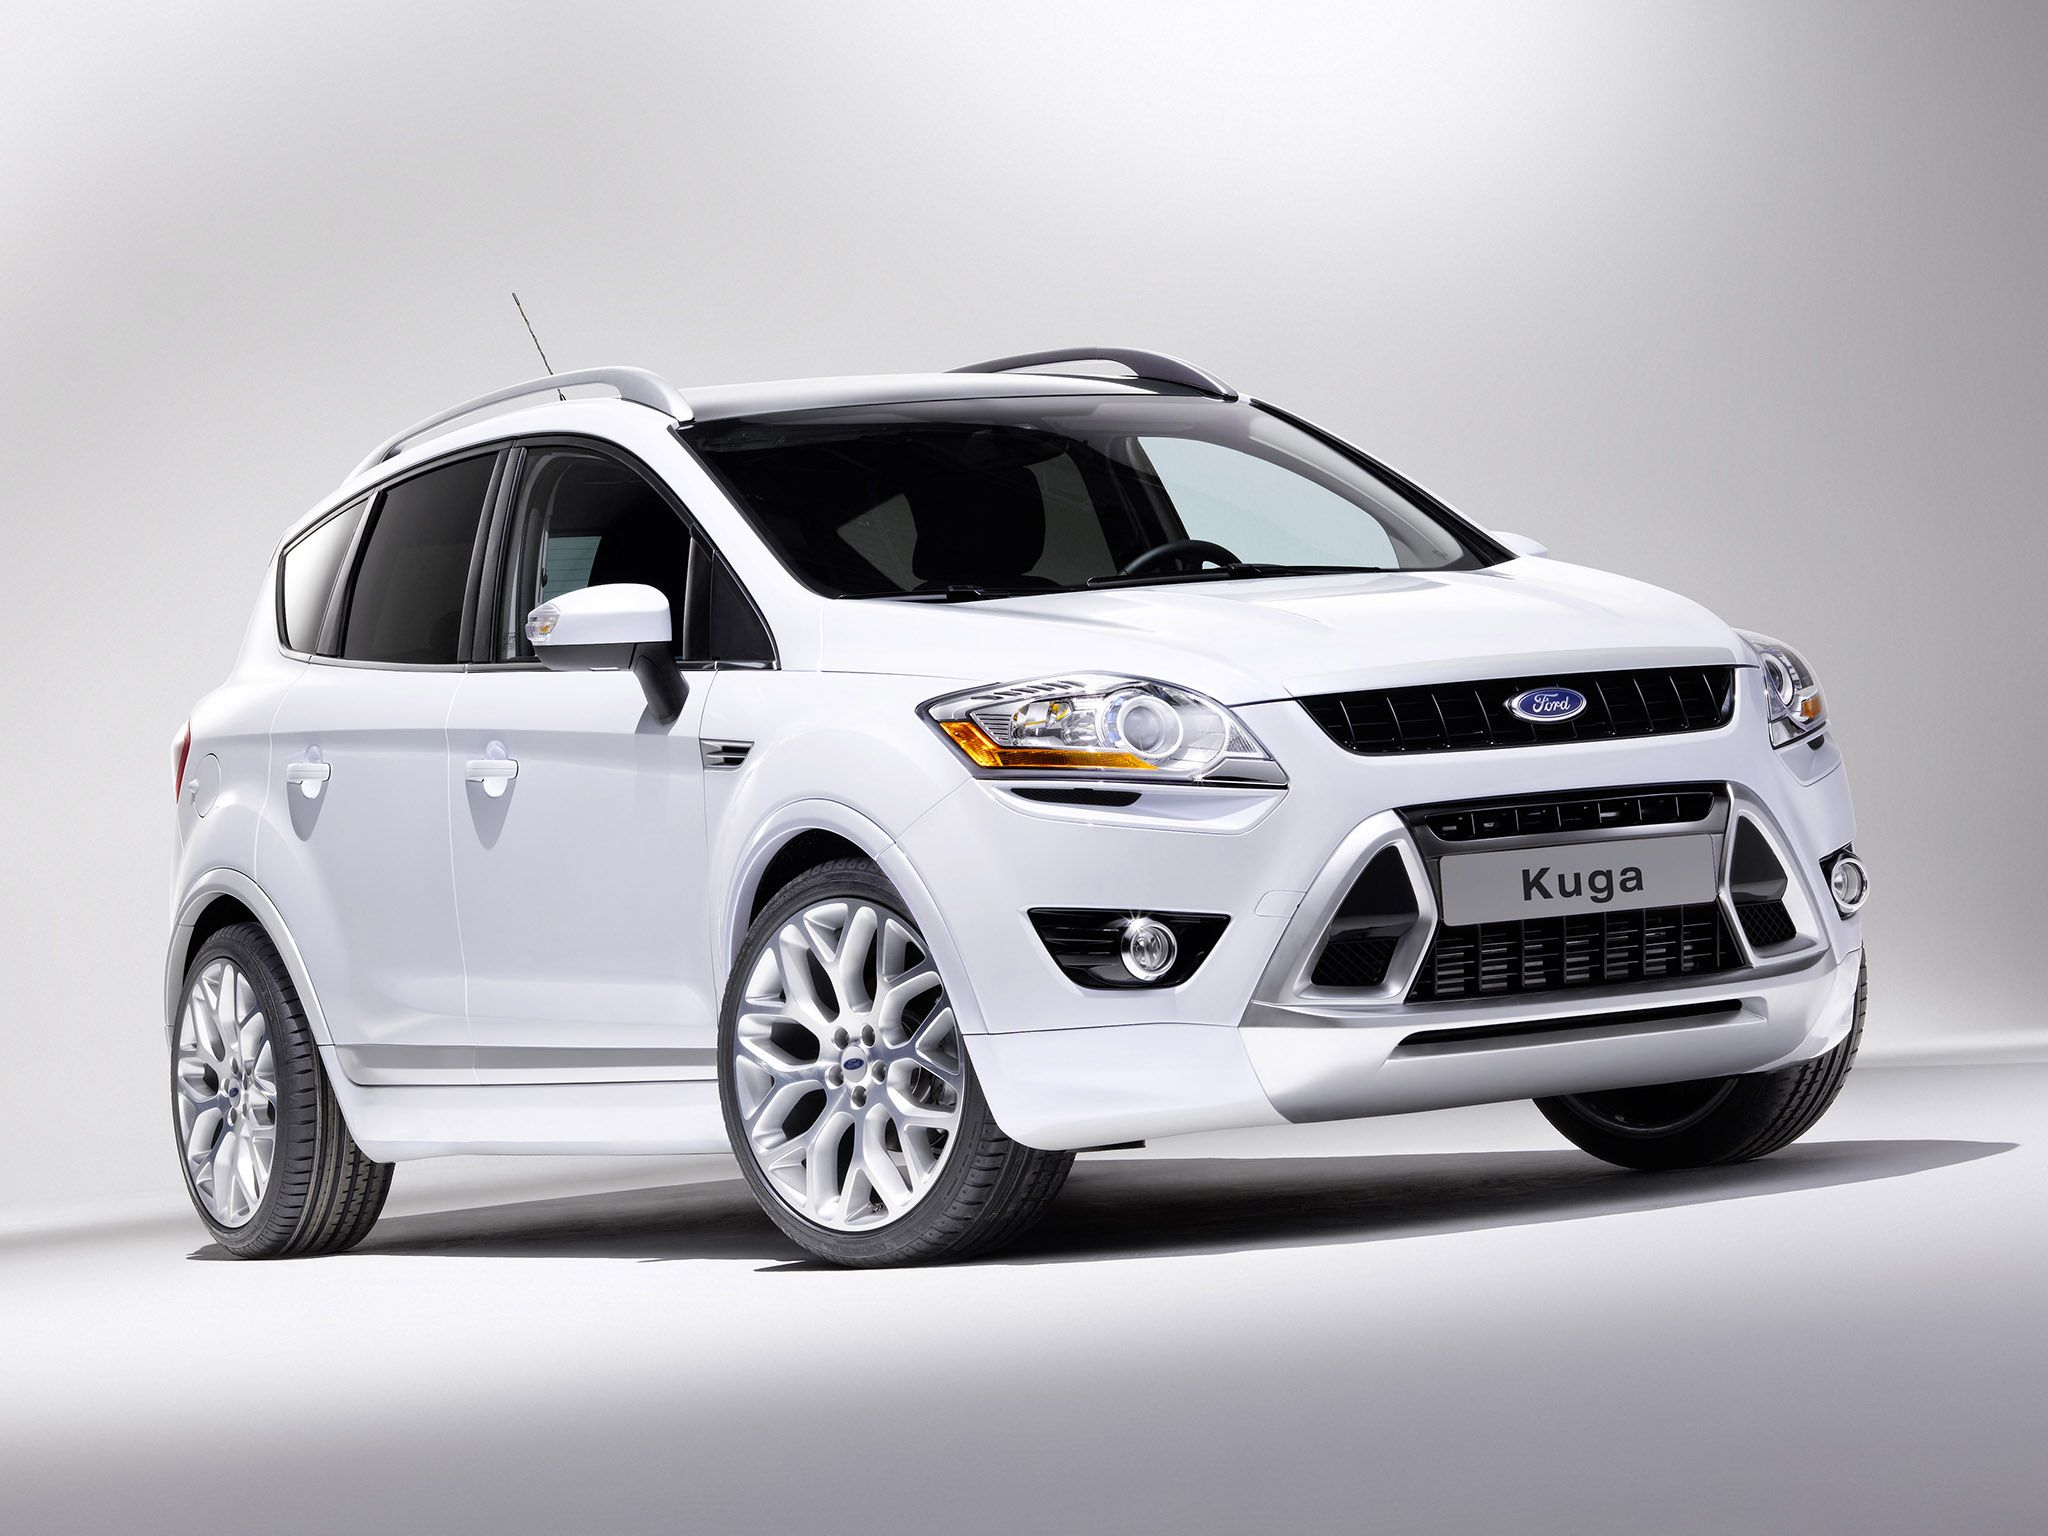 Ford Kuga 2008 Ford Kuga Car Ford Ford Escape